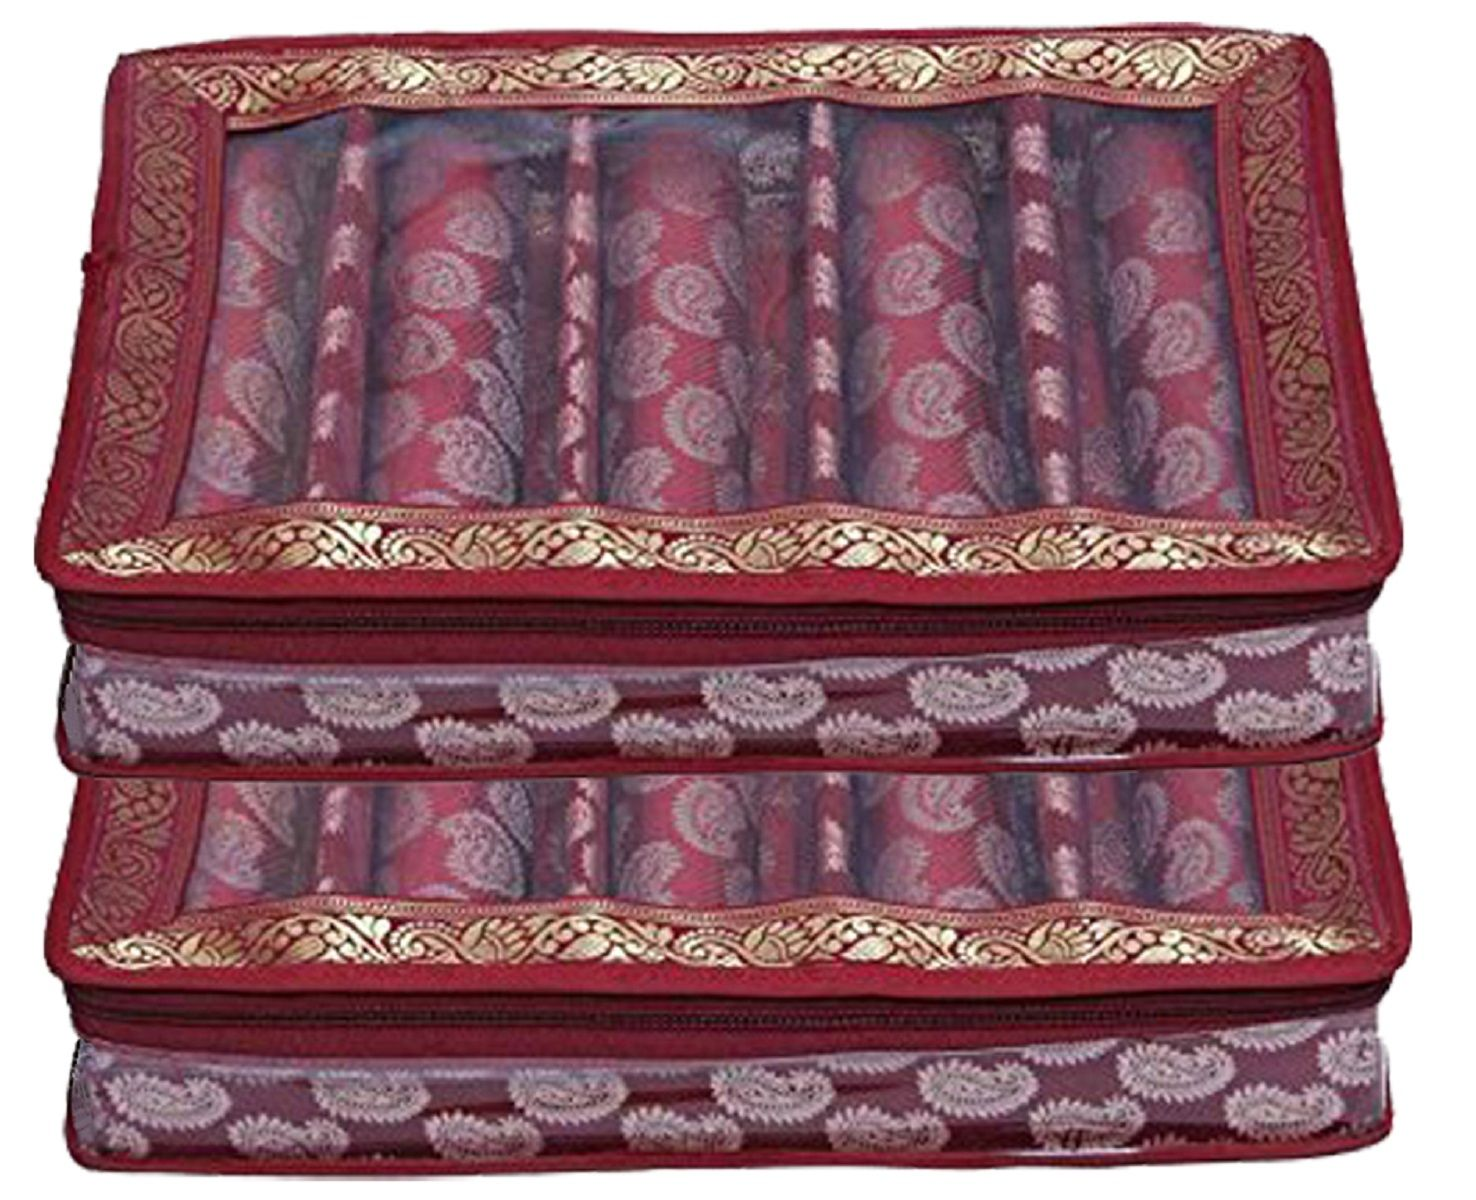 Kuber Industries™ 5 Roll Brocade Bangle box With Hard Board Support Set of 2 Pcs Maroon (Code-COM003)